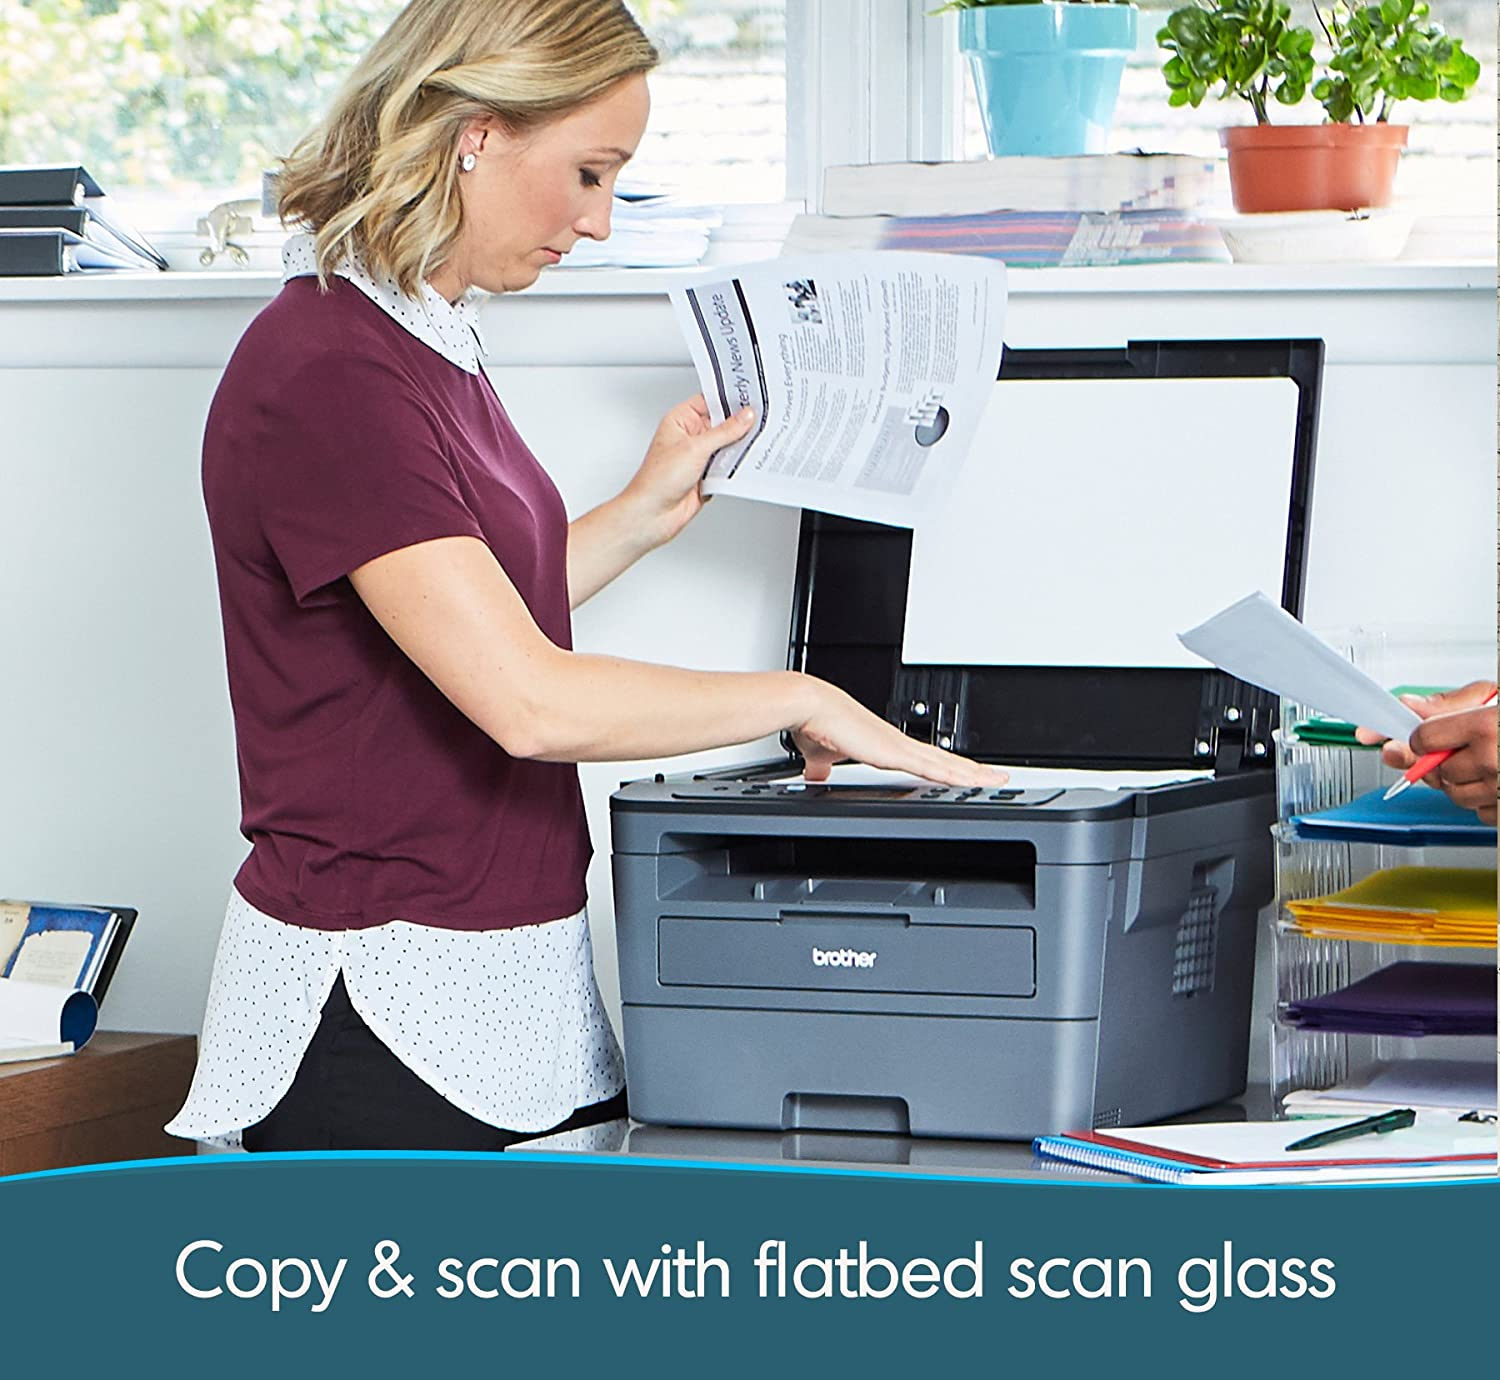 Brother HL-L23 Series Compact Wireless Monochrome Laser All-in-One Printer - Print Scan Copy - Mobile Printing - Auto Duplex Printing - Up to 32 Pages/Minute - 2-line Display + HDMI Cable